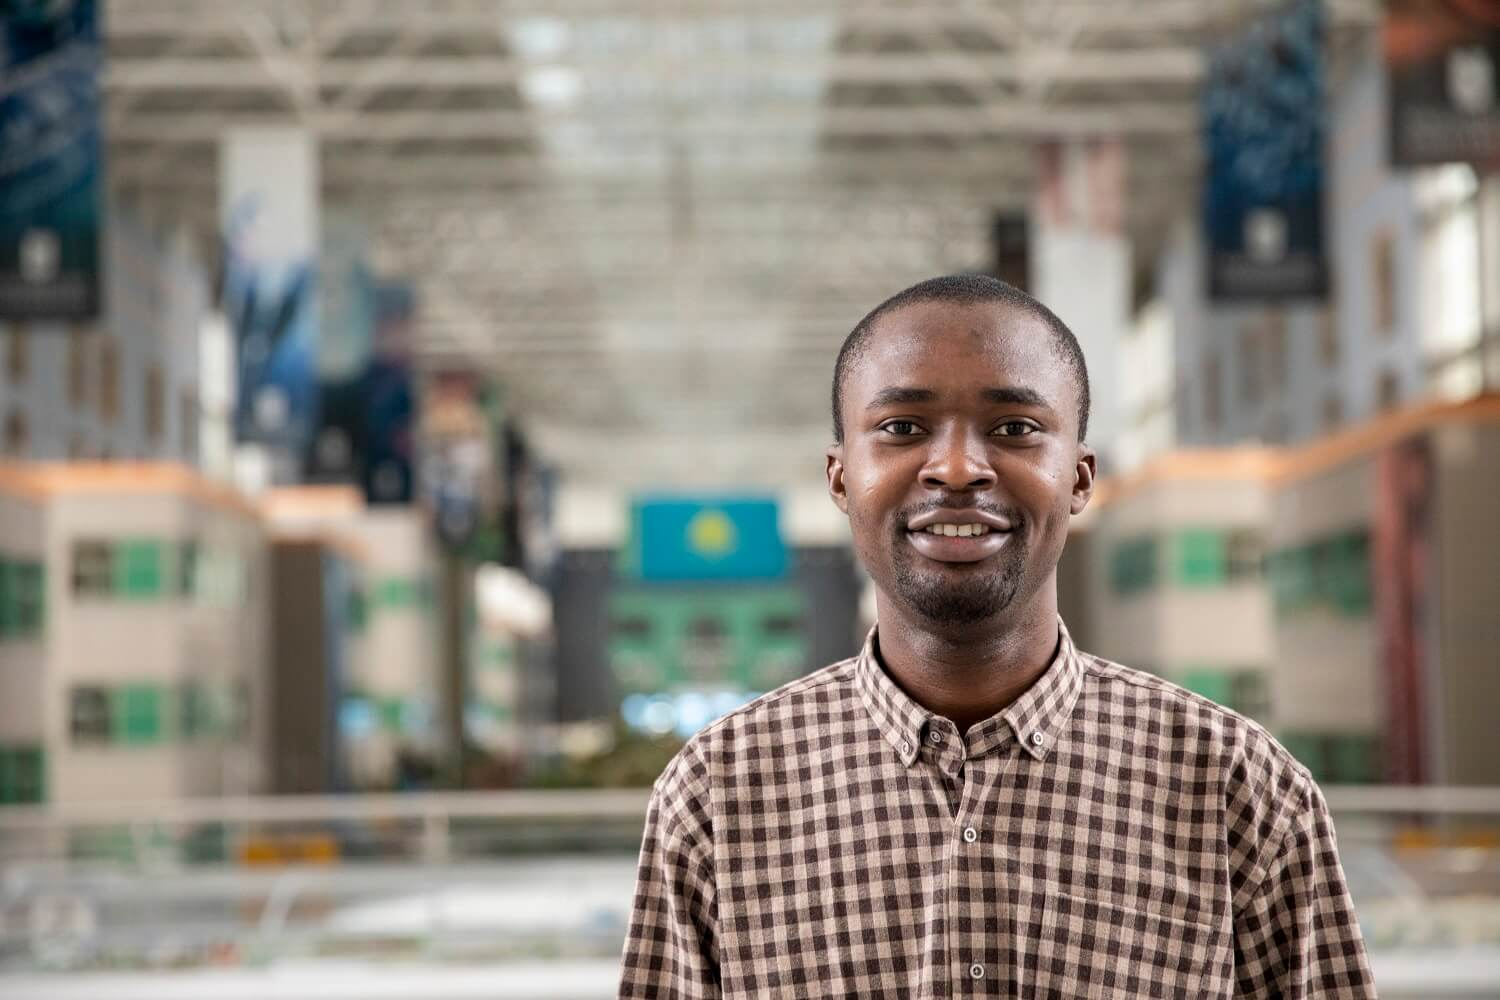 This Nigerian PhD student found an 'amazing science' education ... in Kazakhstan